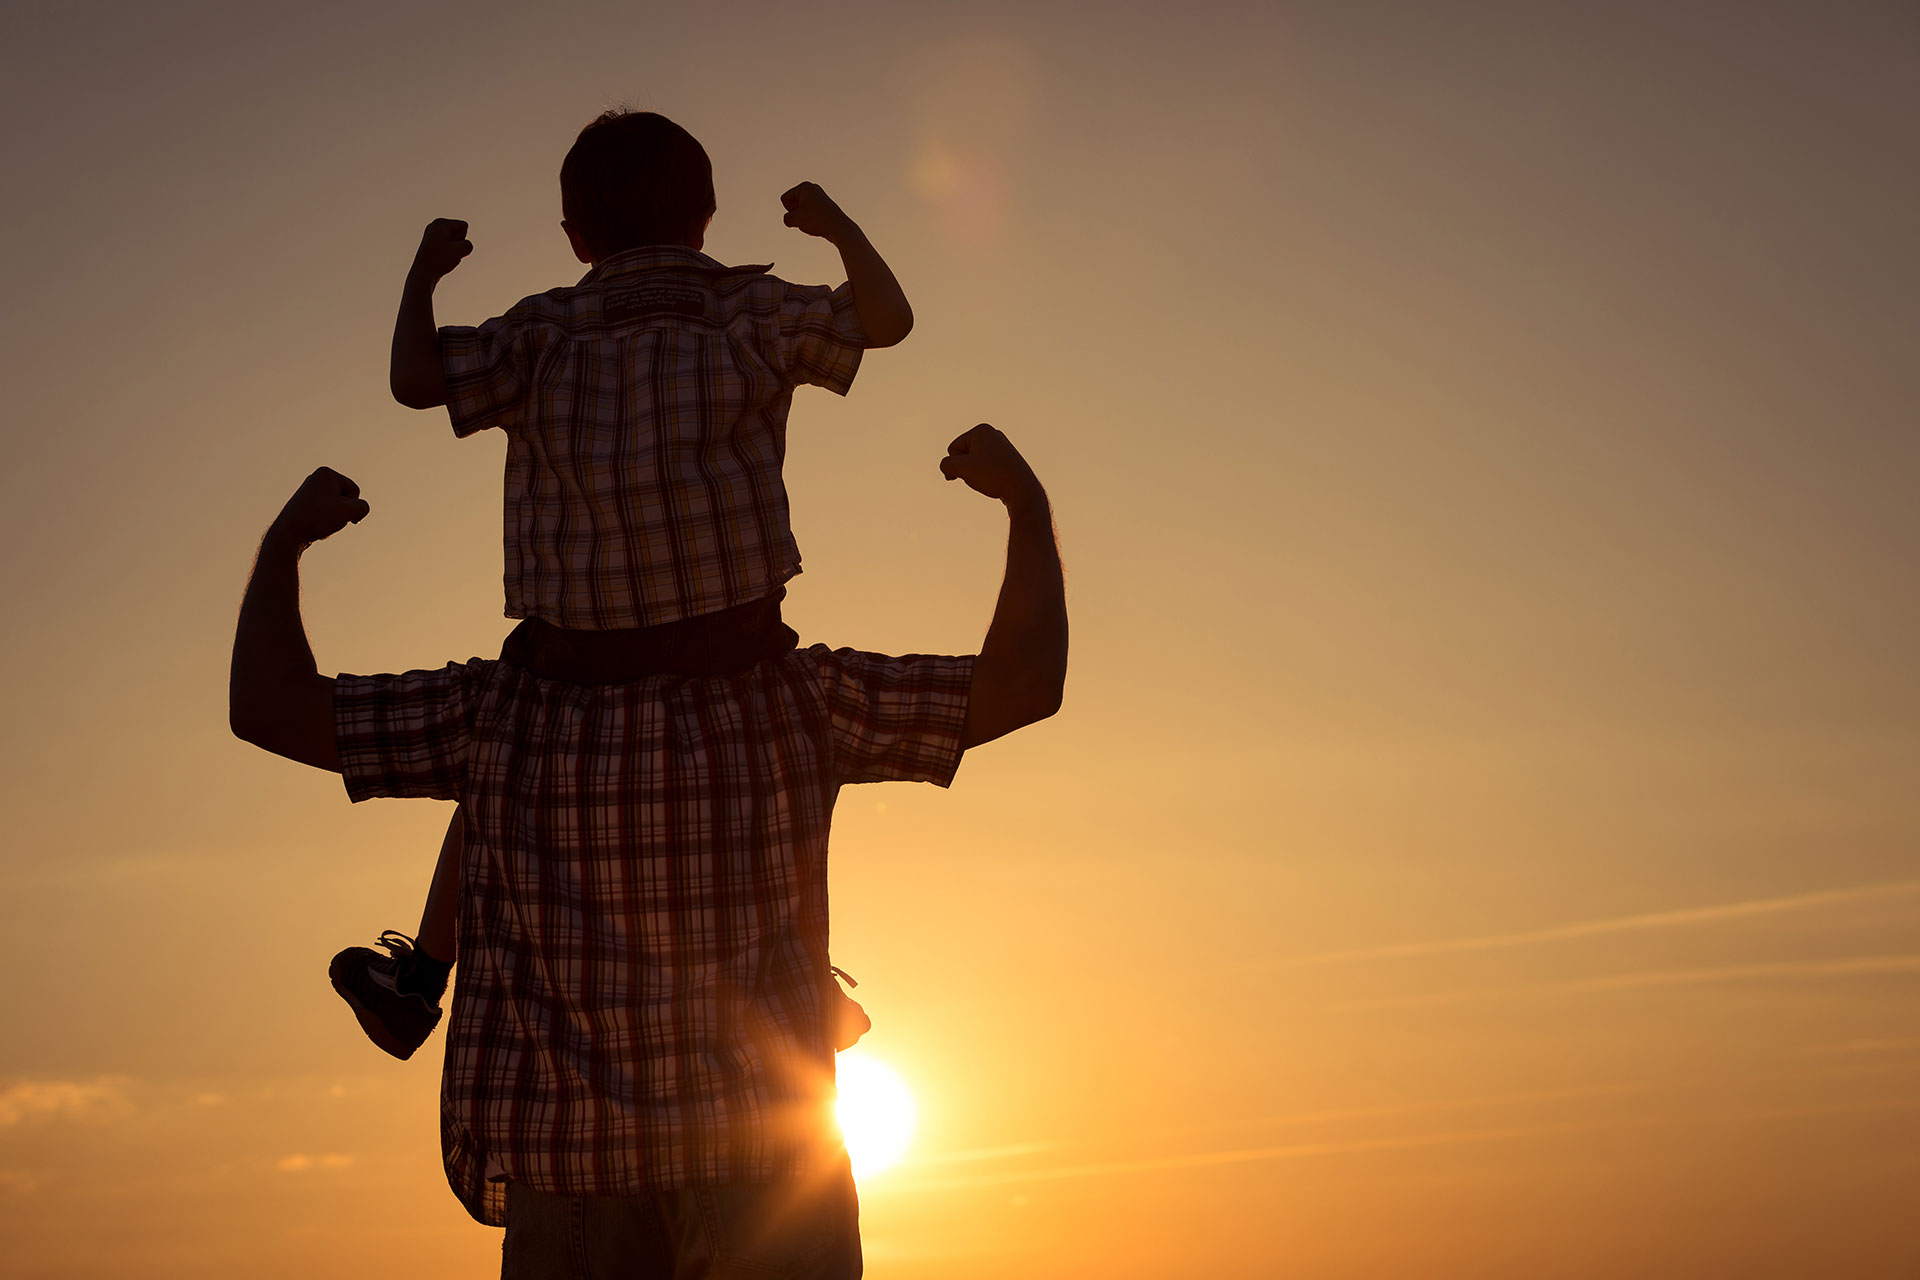 Dad and Son; Courtesy of altanaka/Shutterstock.com